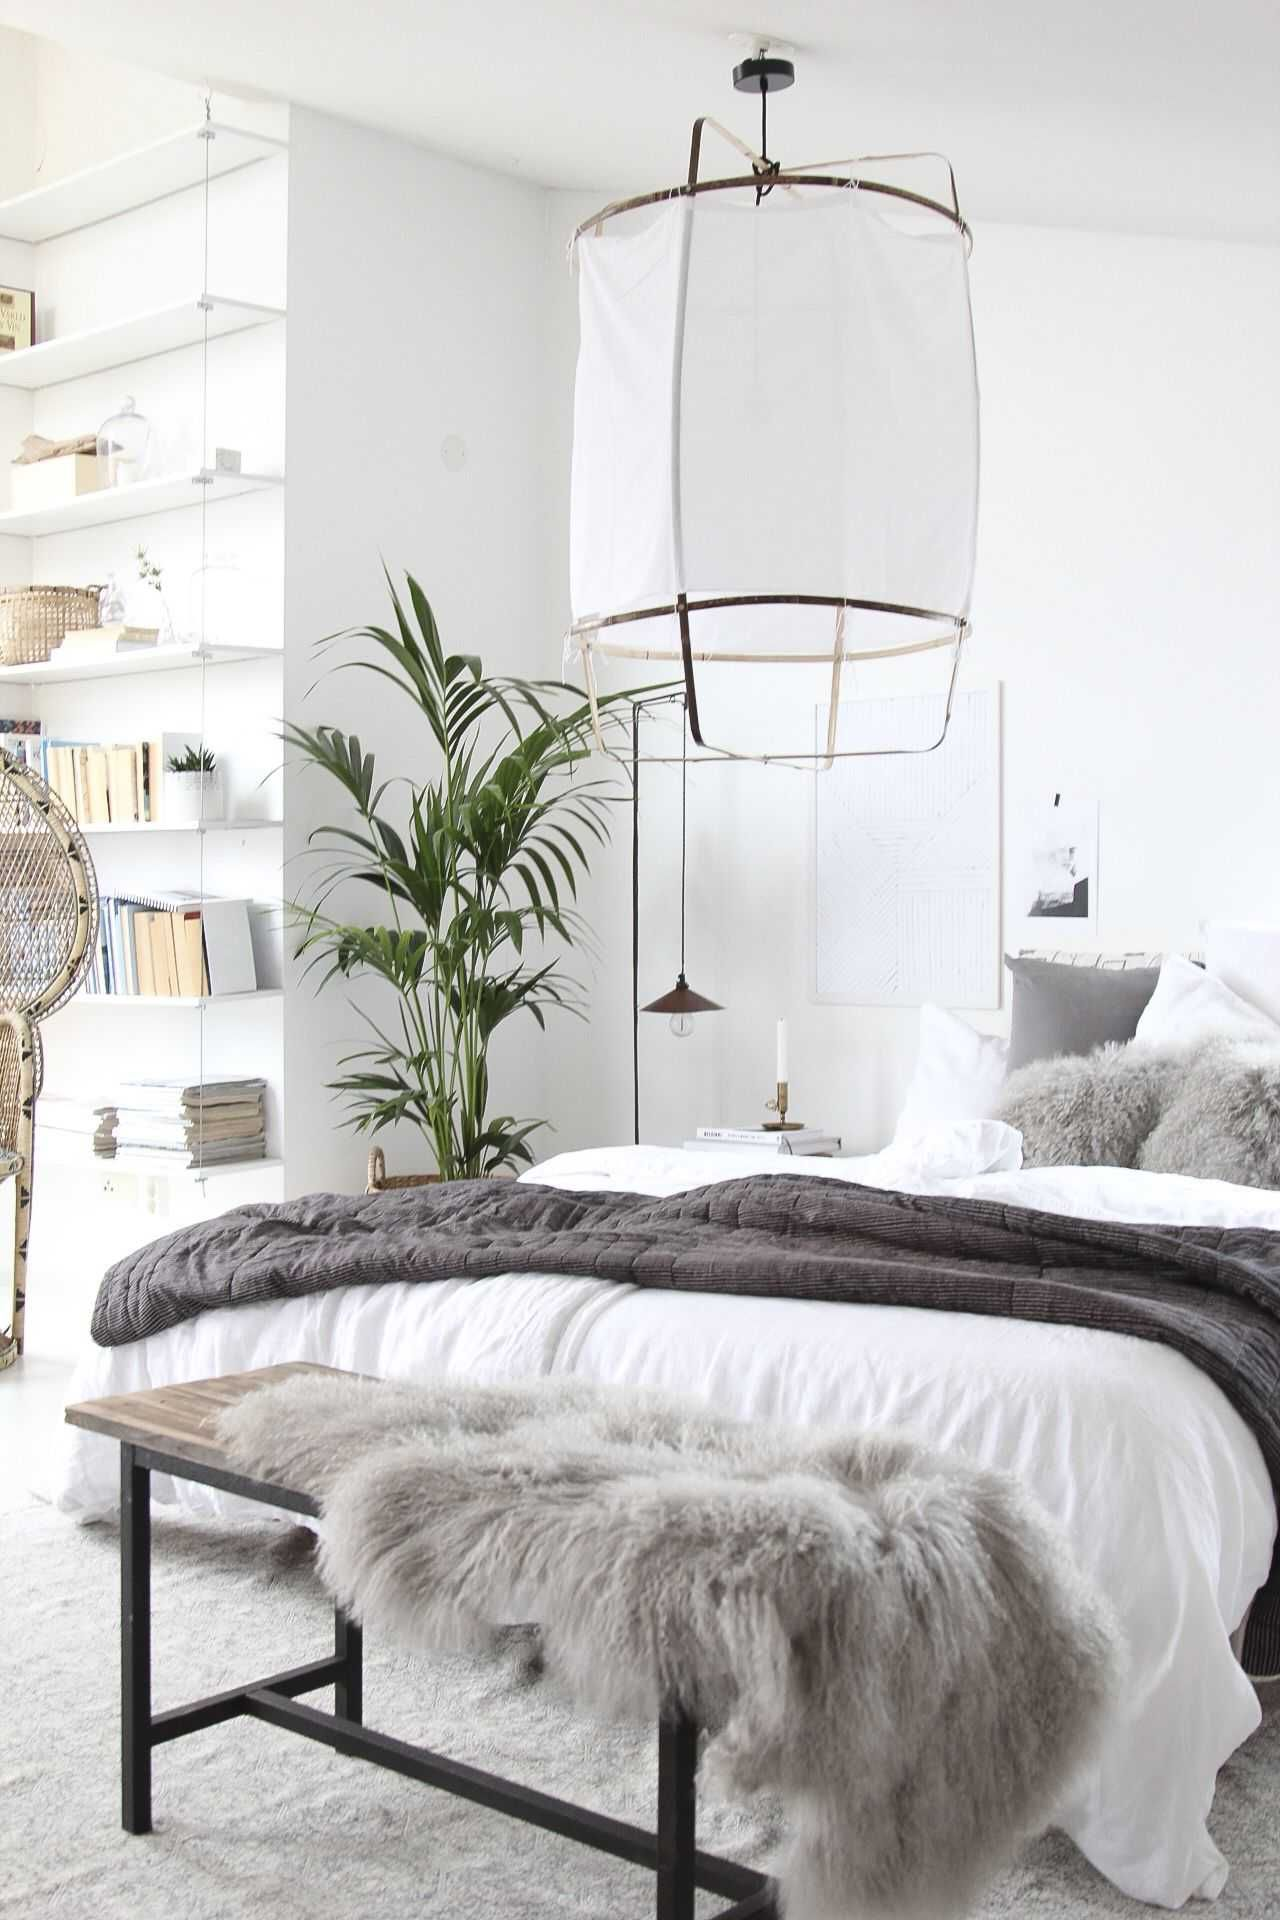 Bedroom Scandinavian Style New Bedroom Scandinavian Style Modern Christmas Interior Of B Scandinavian Bedroom Decor Scandinavian Design Bedroom Home Bedroom